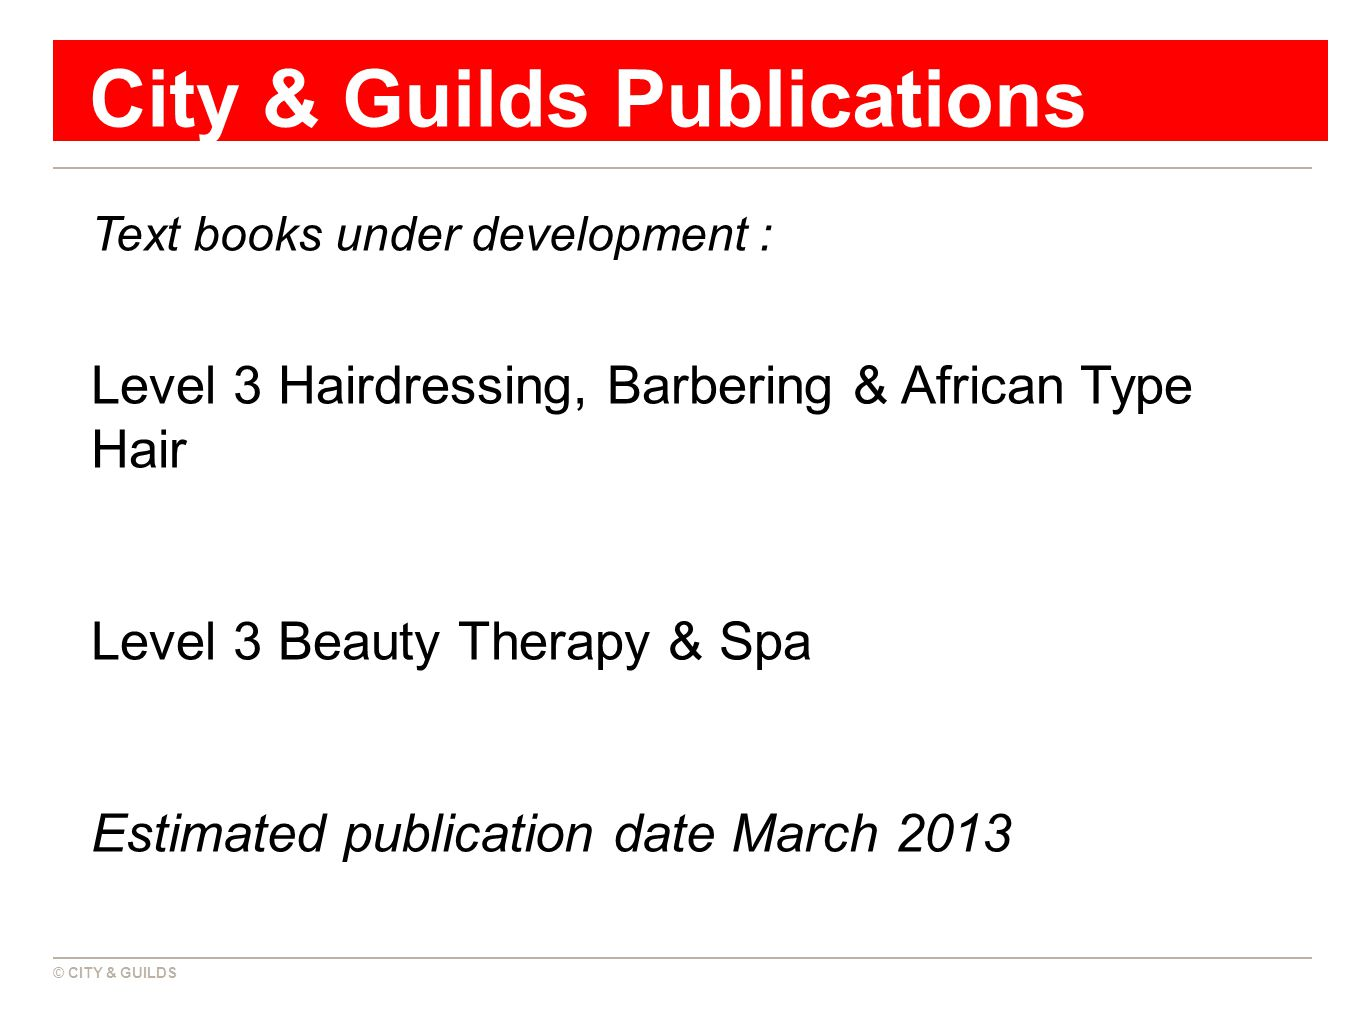 © CITY & GUILDS City & Guilds Publications Text books under development : Level 3 Hairdressing, Barbering & African Type Hair Level 3 Beauty Therapy & Spa Estimated publication date March 2013